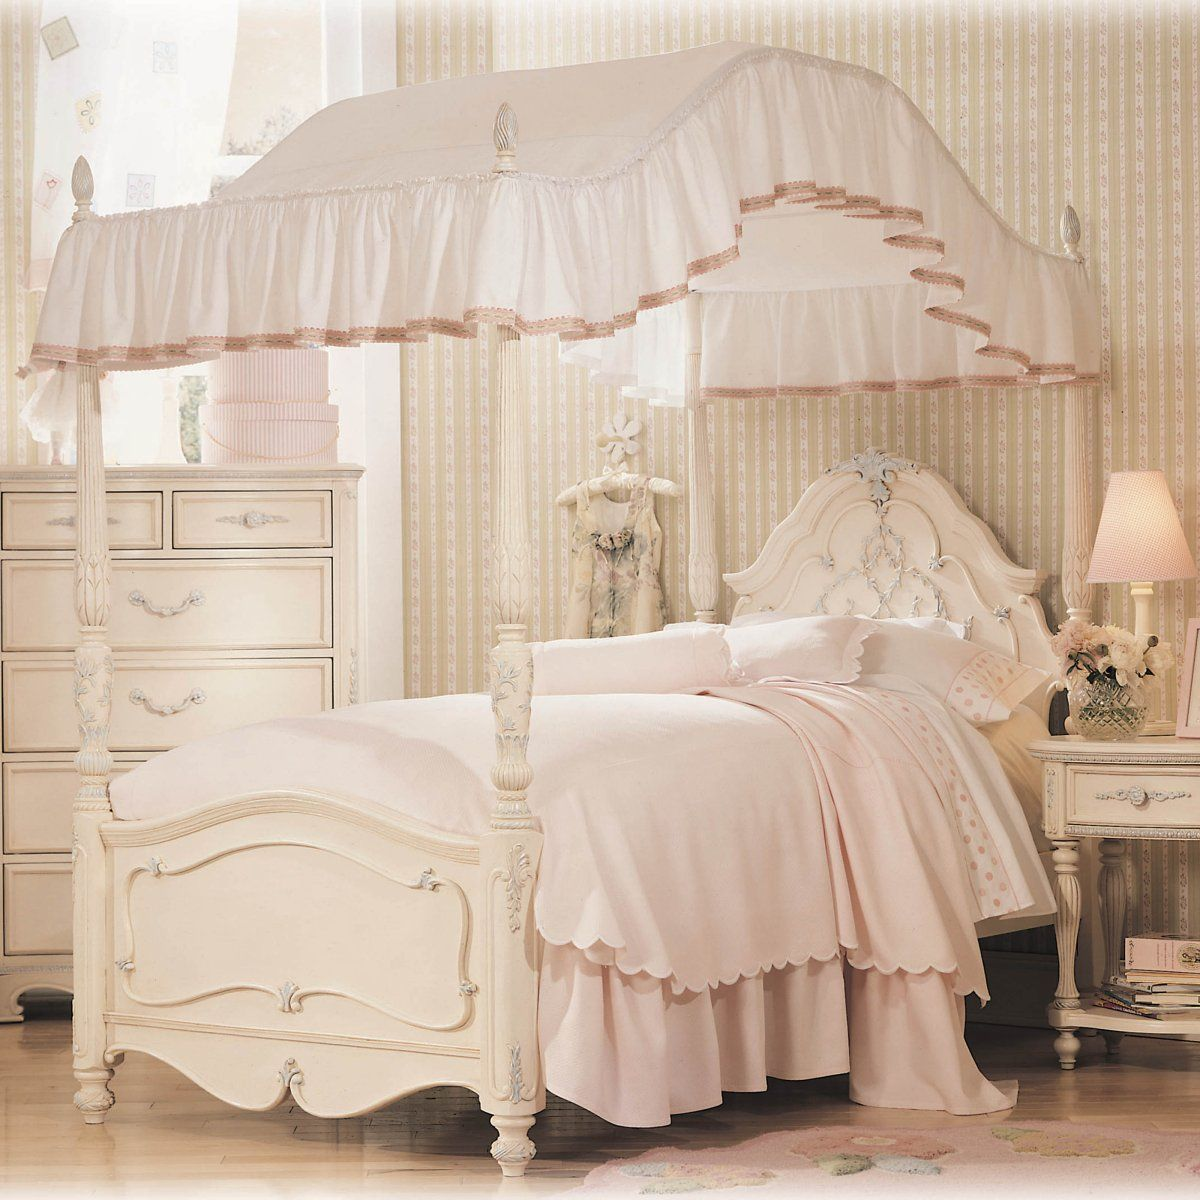 Bedroom Small Beautiful Pink Canopy Bed For Girls